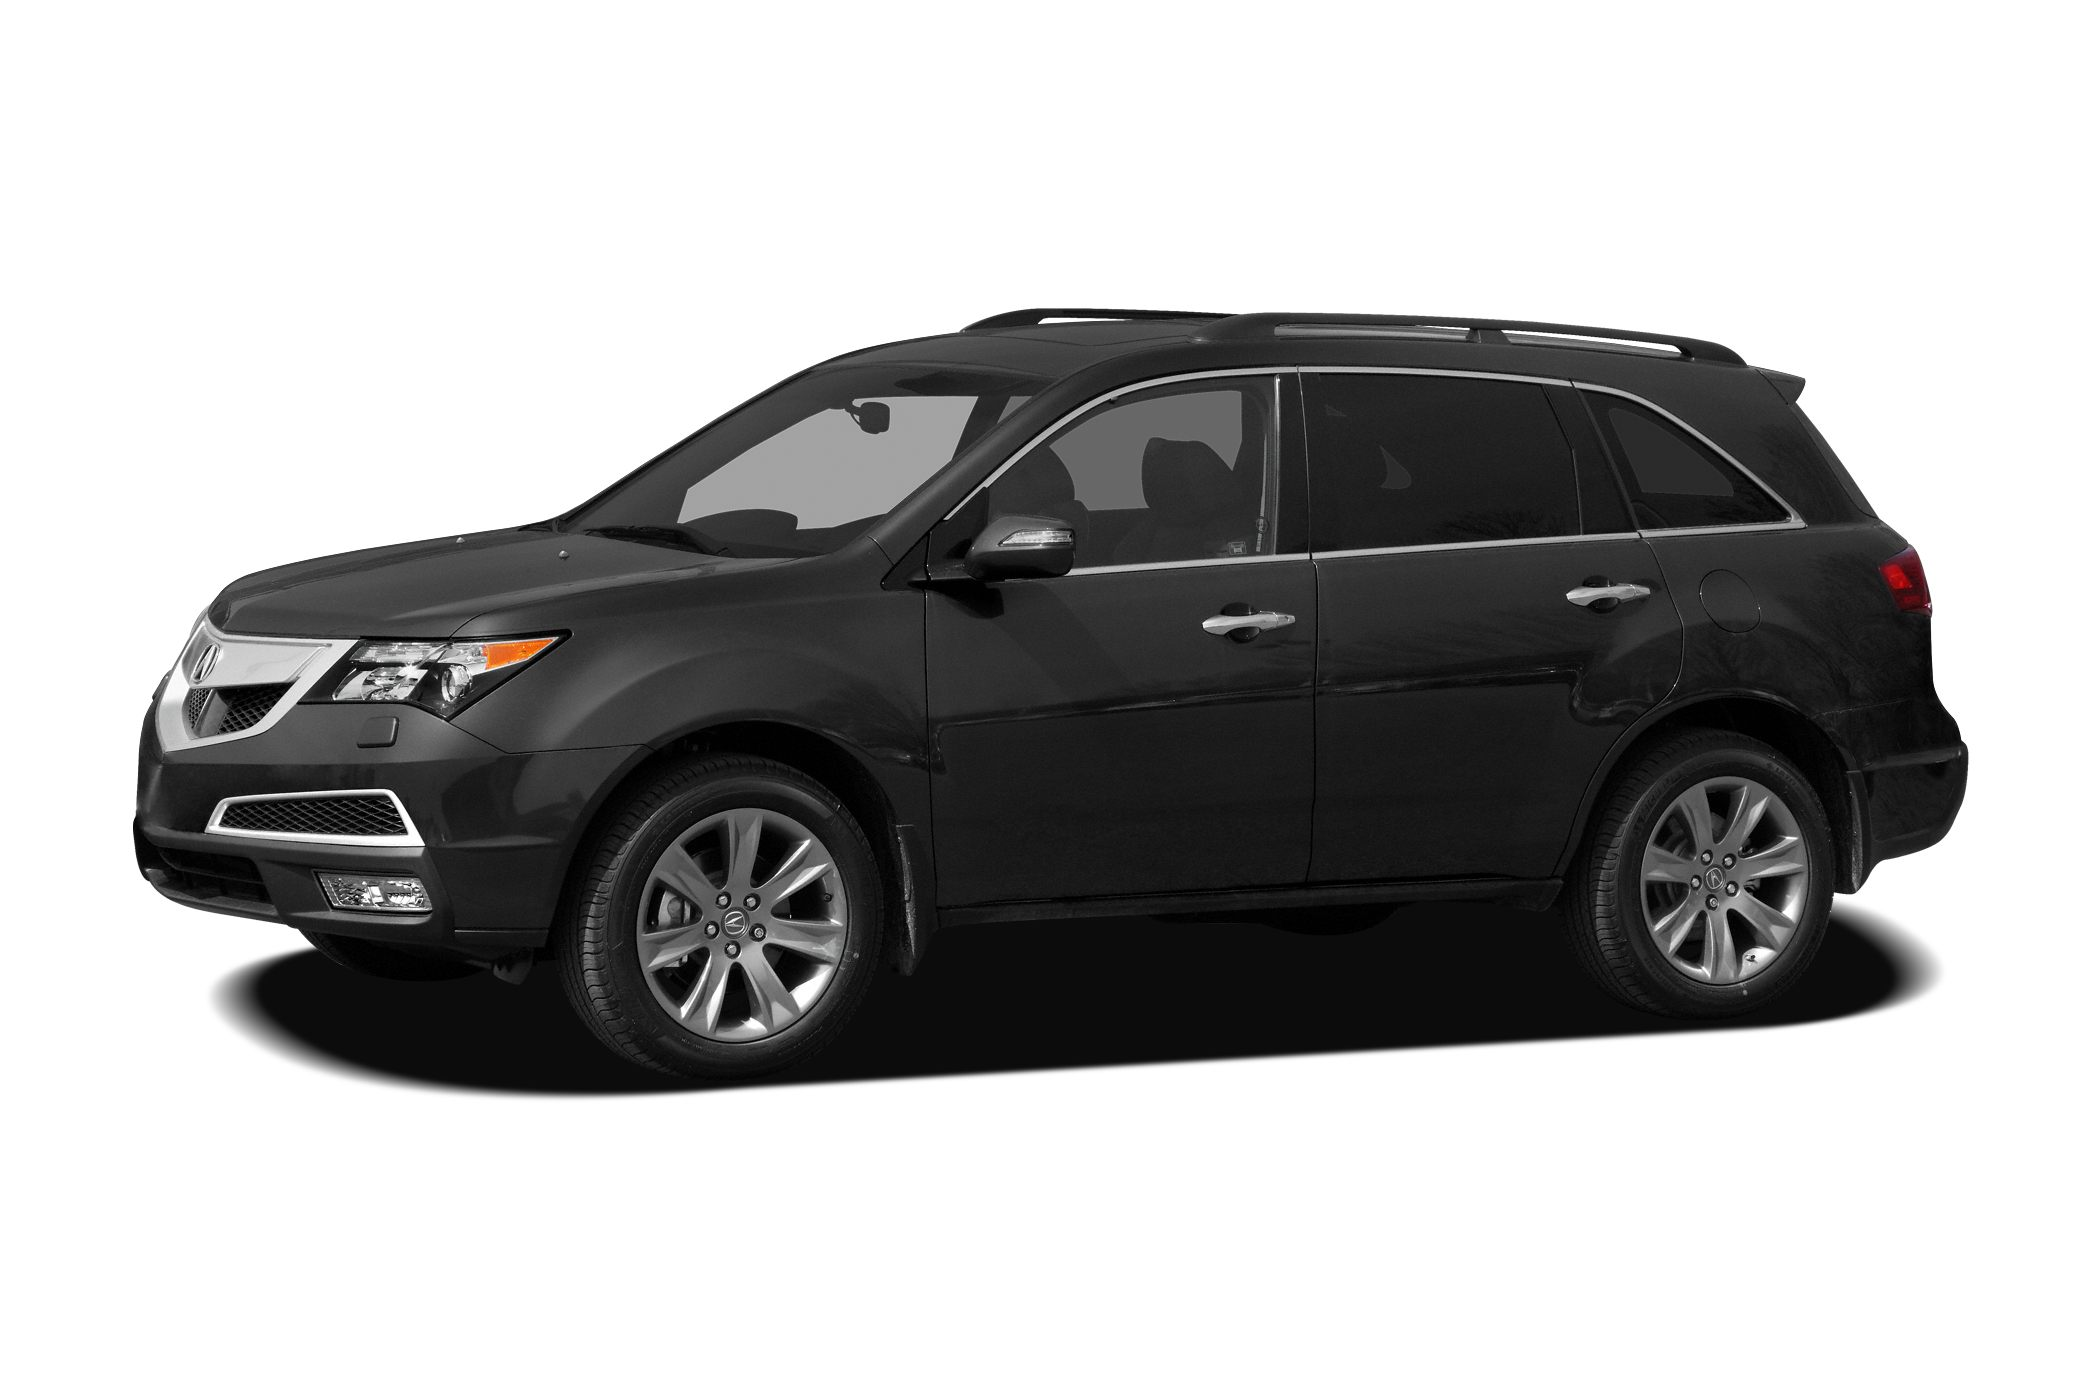 2010 Acura MDX 3.7L Technology SUV for sale in Tampa for $22,991 with 115,870 miles